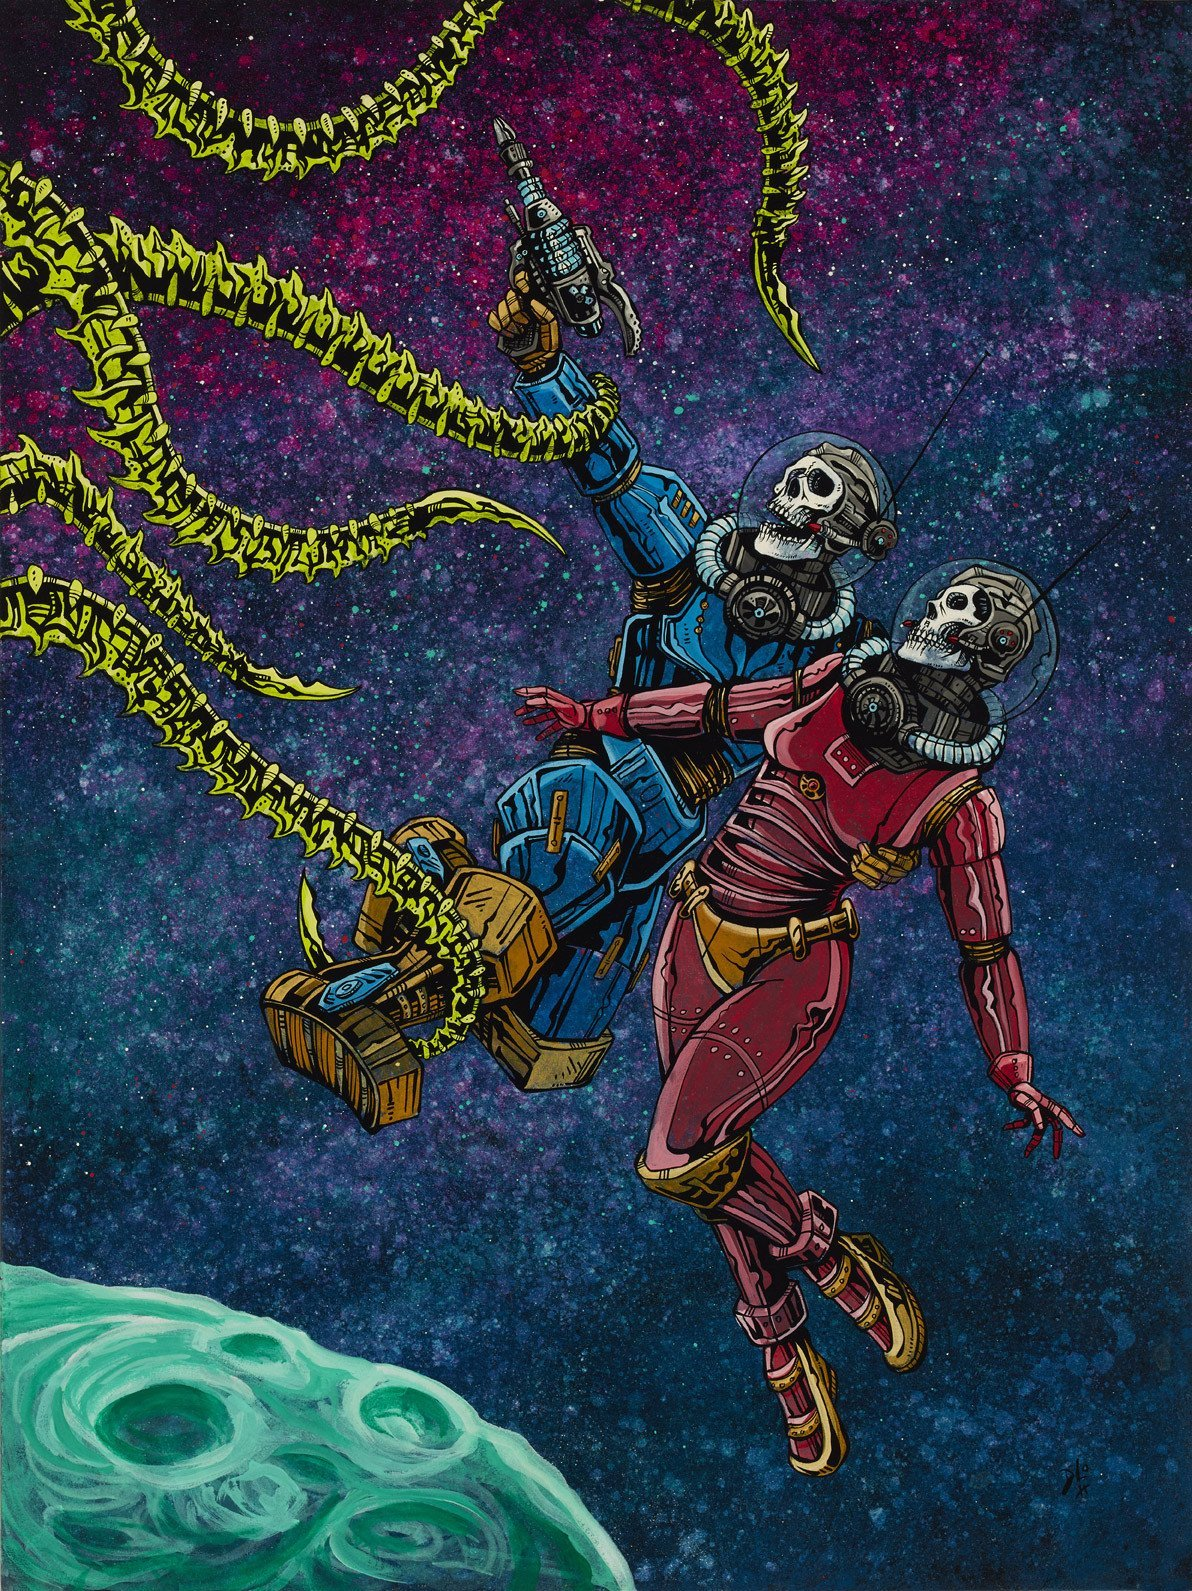 Clash in the Cosmos by Day of the Dead Artist David Lozeau, Day of the Dead Art, Dia de los Muertos Art, Dia de los Muertos Artist